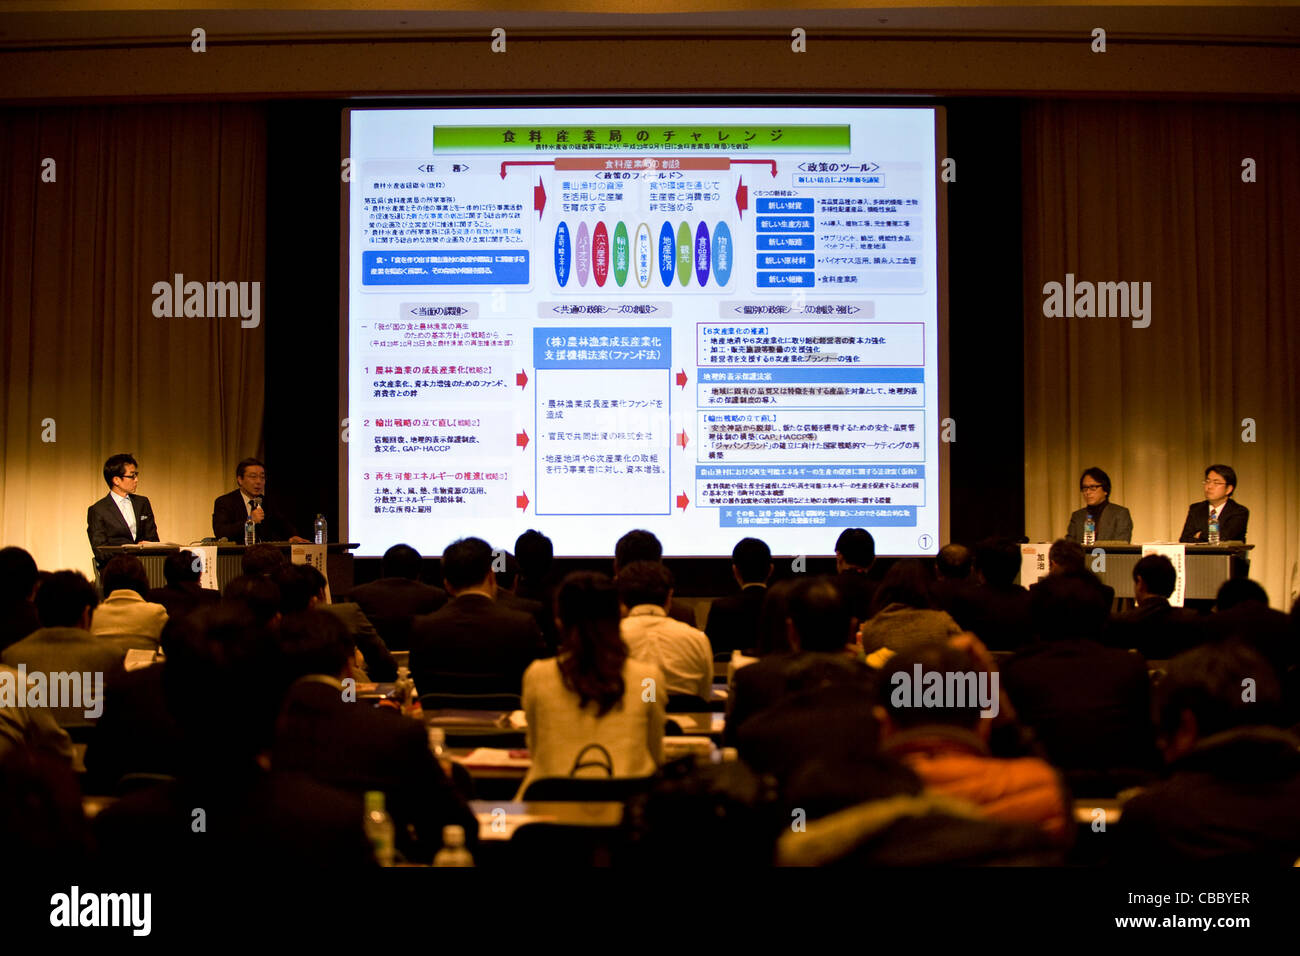 A round table is held during the Food Industry Summit 2011 in Sendai, Japan - Stock Image